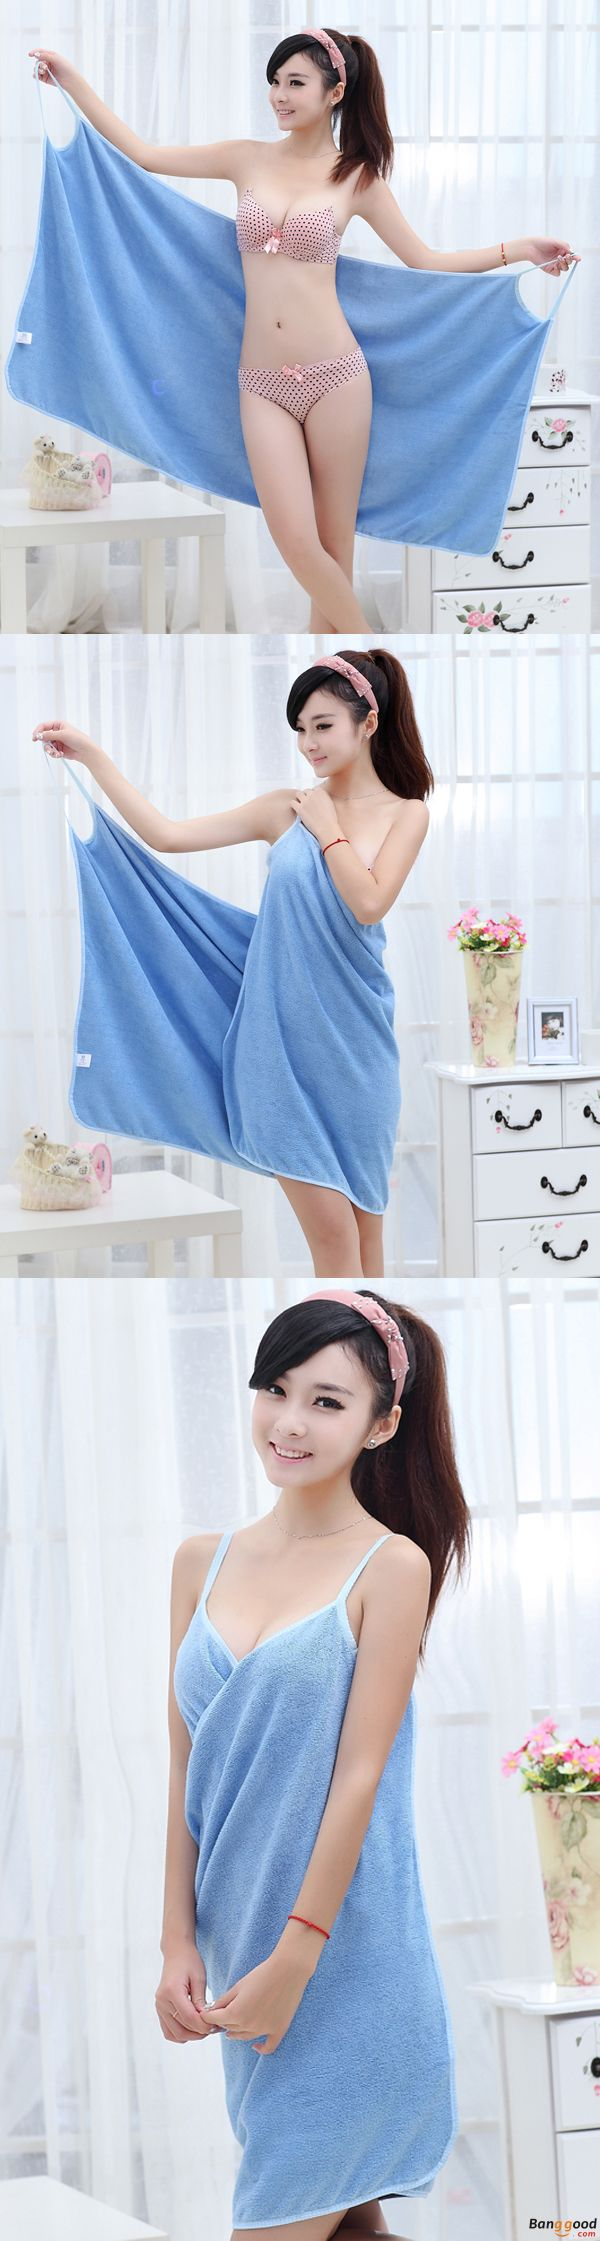 US$11.99 + Free shipping. Soft Washcloth, Bath Towel, Shoulder Straps Wearable Bath Towel, Beach Cloth, Beach Spa Bathrobes, Bath Cloth. Color : Pink, Purple, Blue, White, Peach Red, Rose, Green, Orange. Things can be So Convenient.